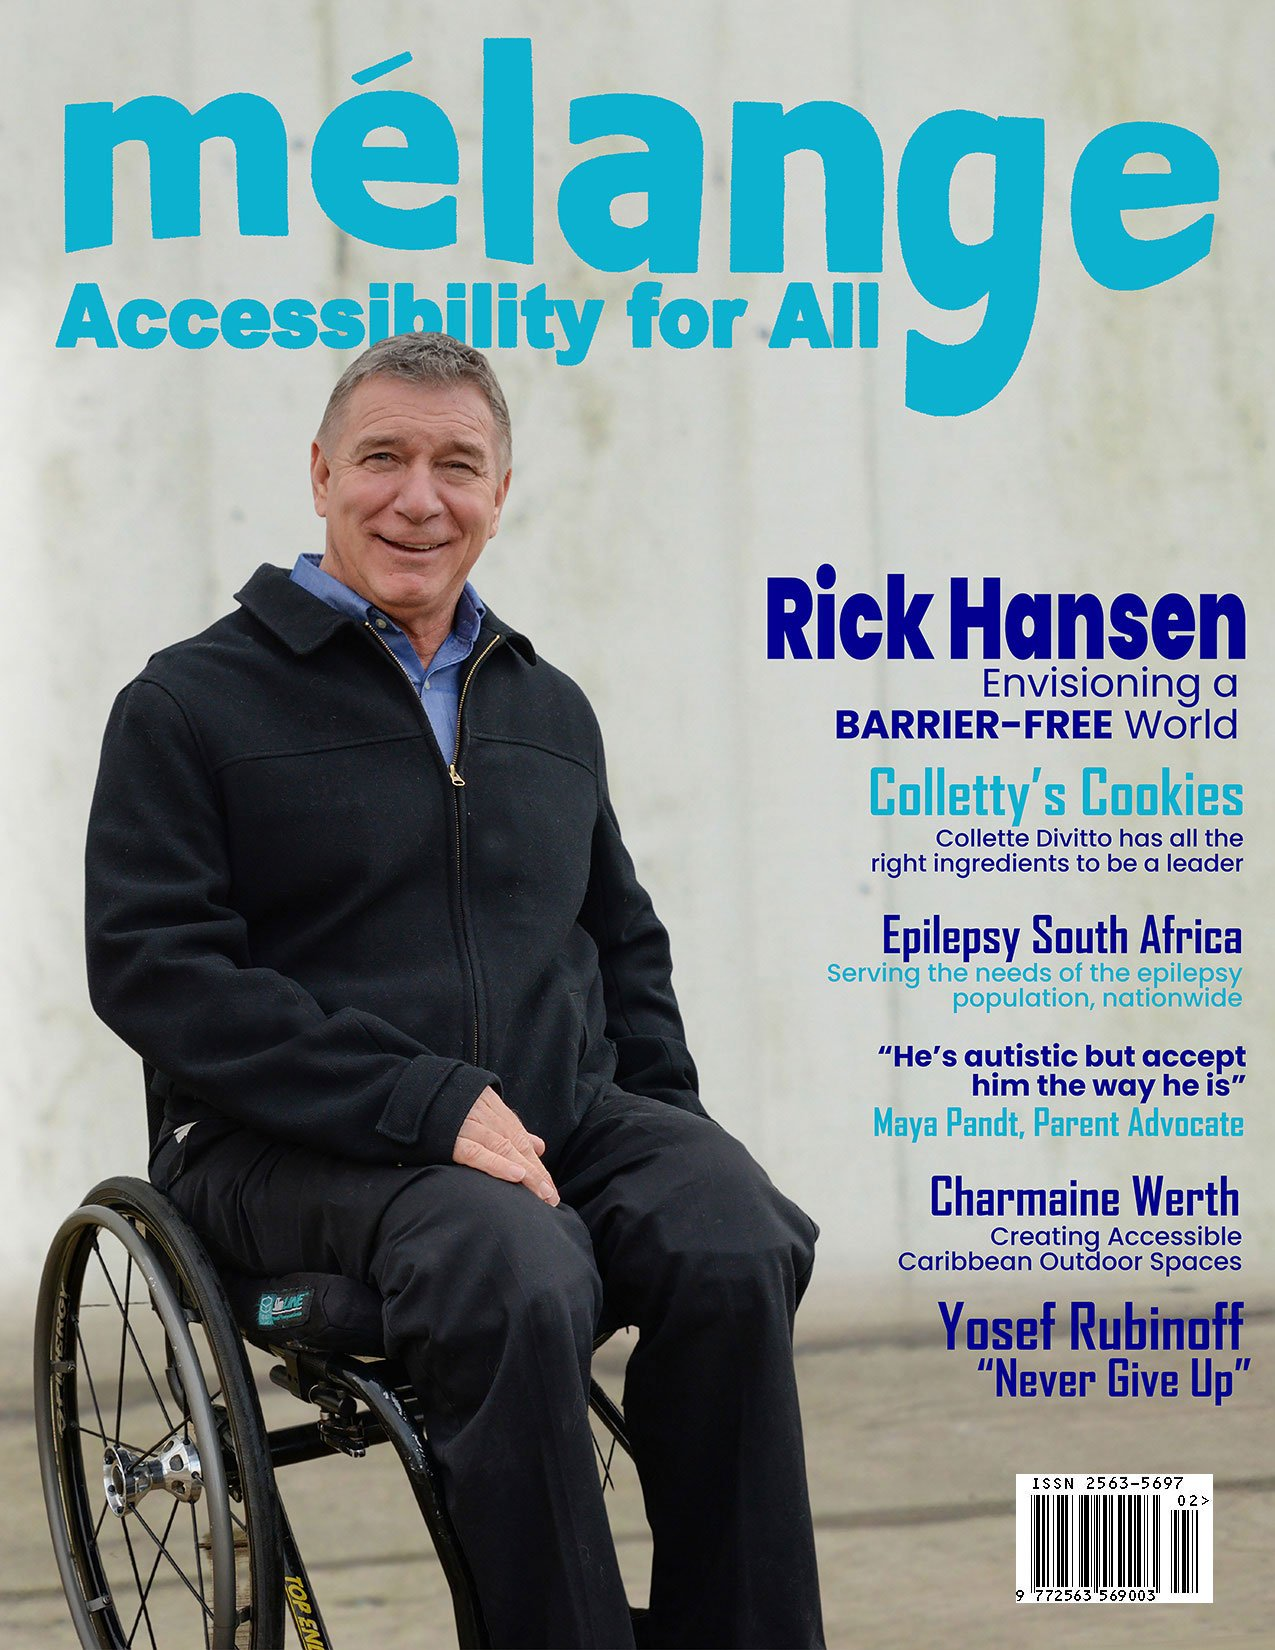 April-cover of Mélange Accessibility for All magazine showing Rick Hansen of the Rick Hansen Foundation